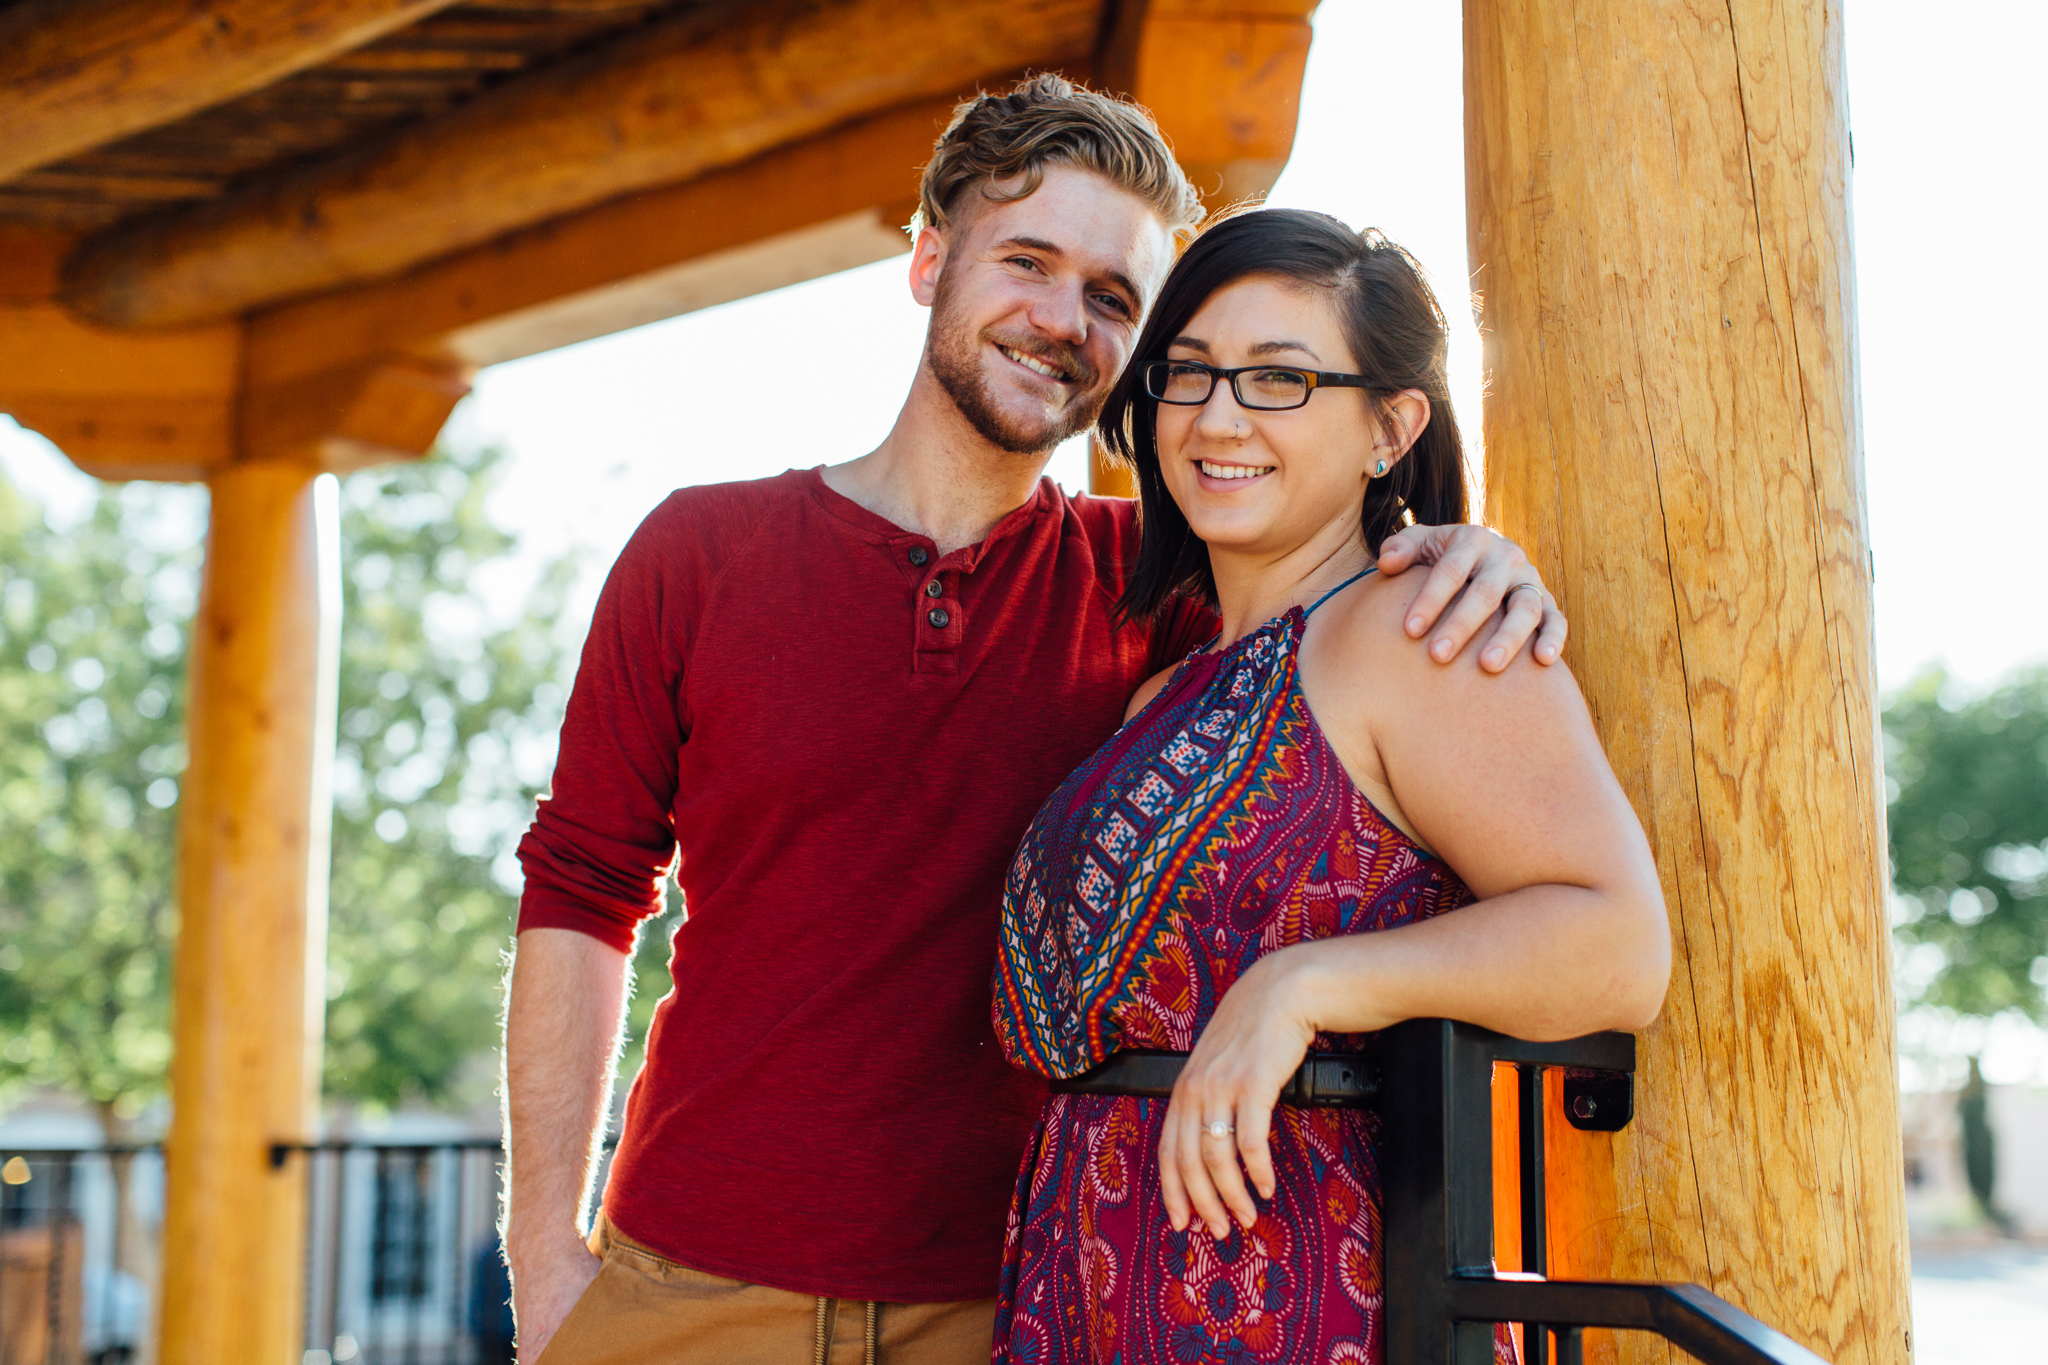 las-cruces-engagement-photographer-01.jpg